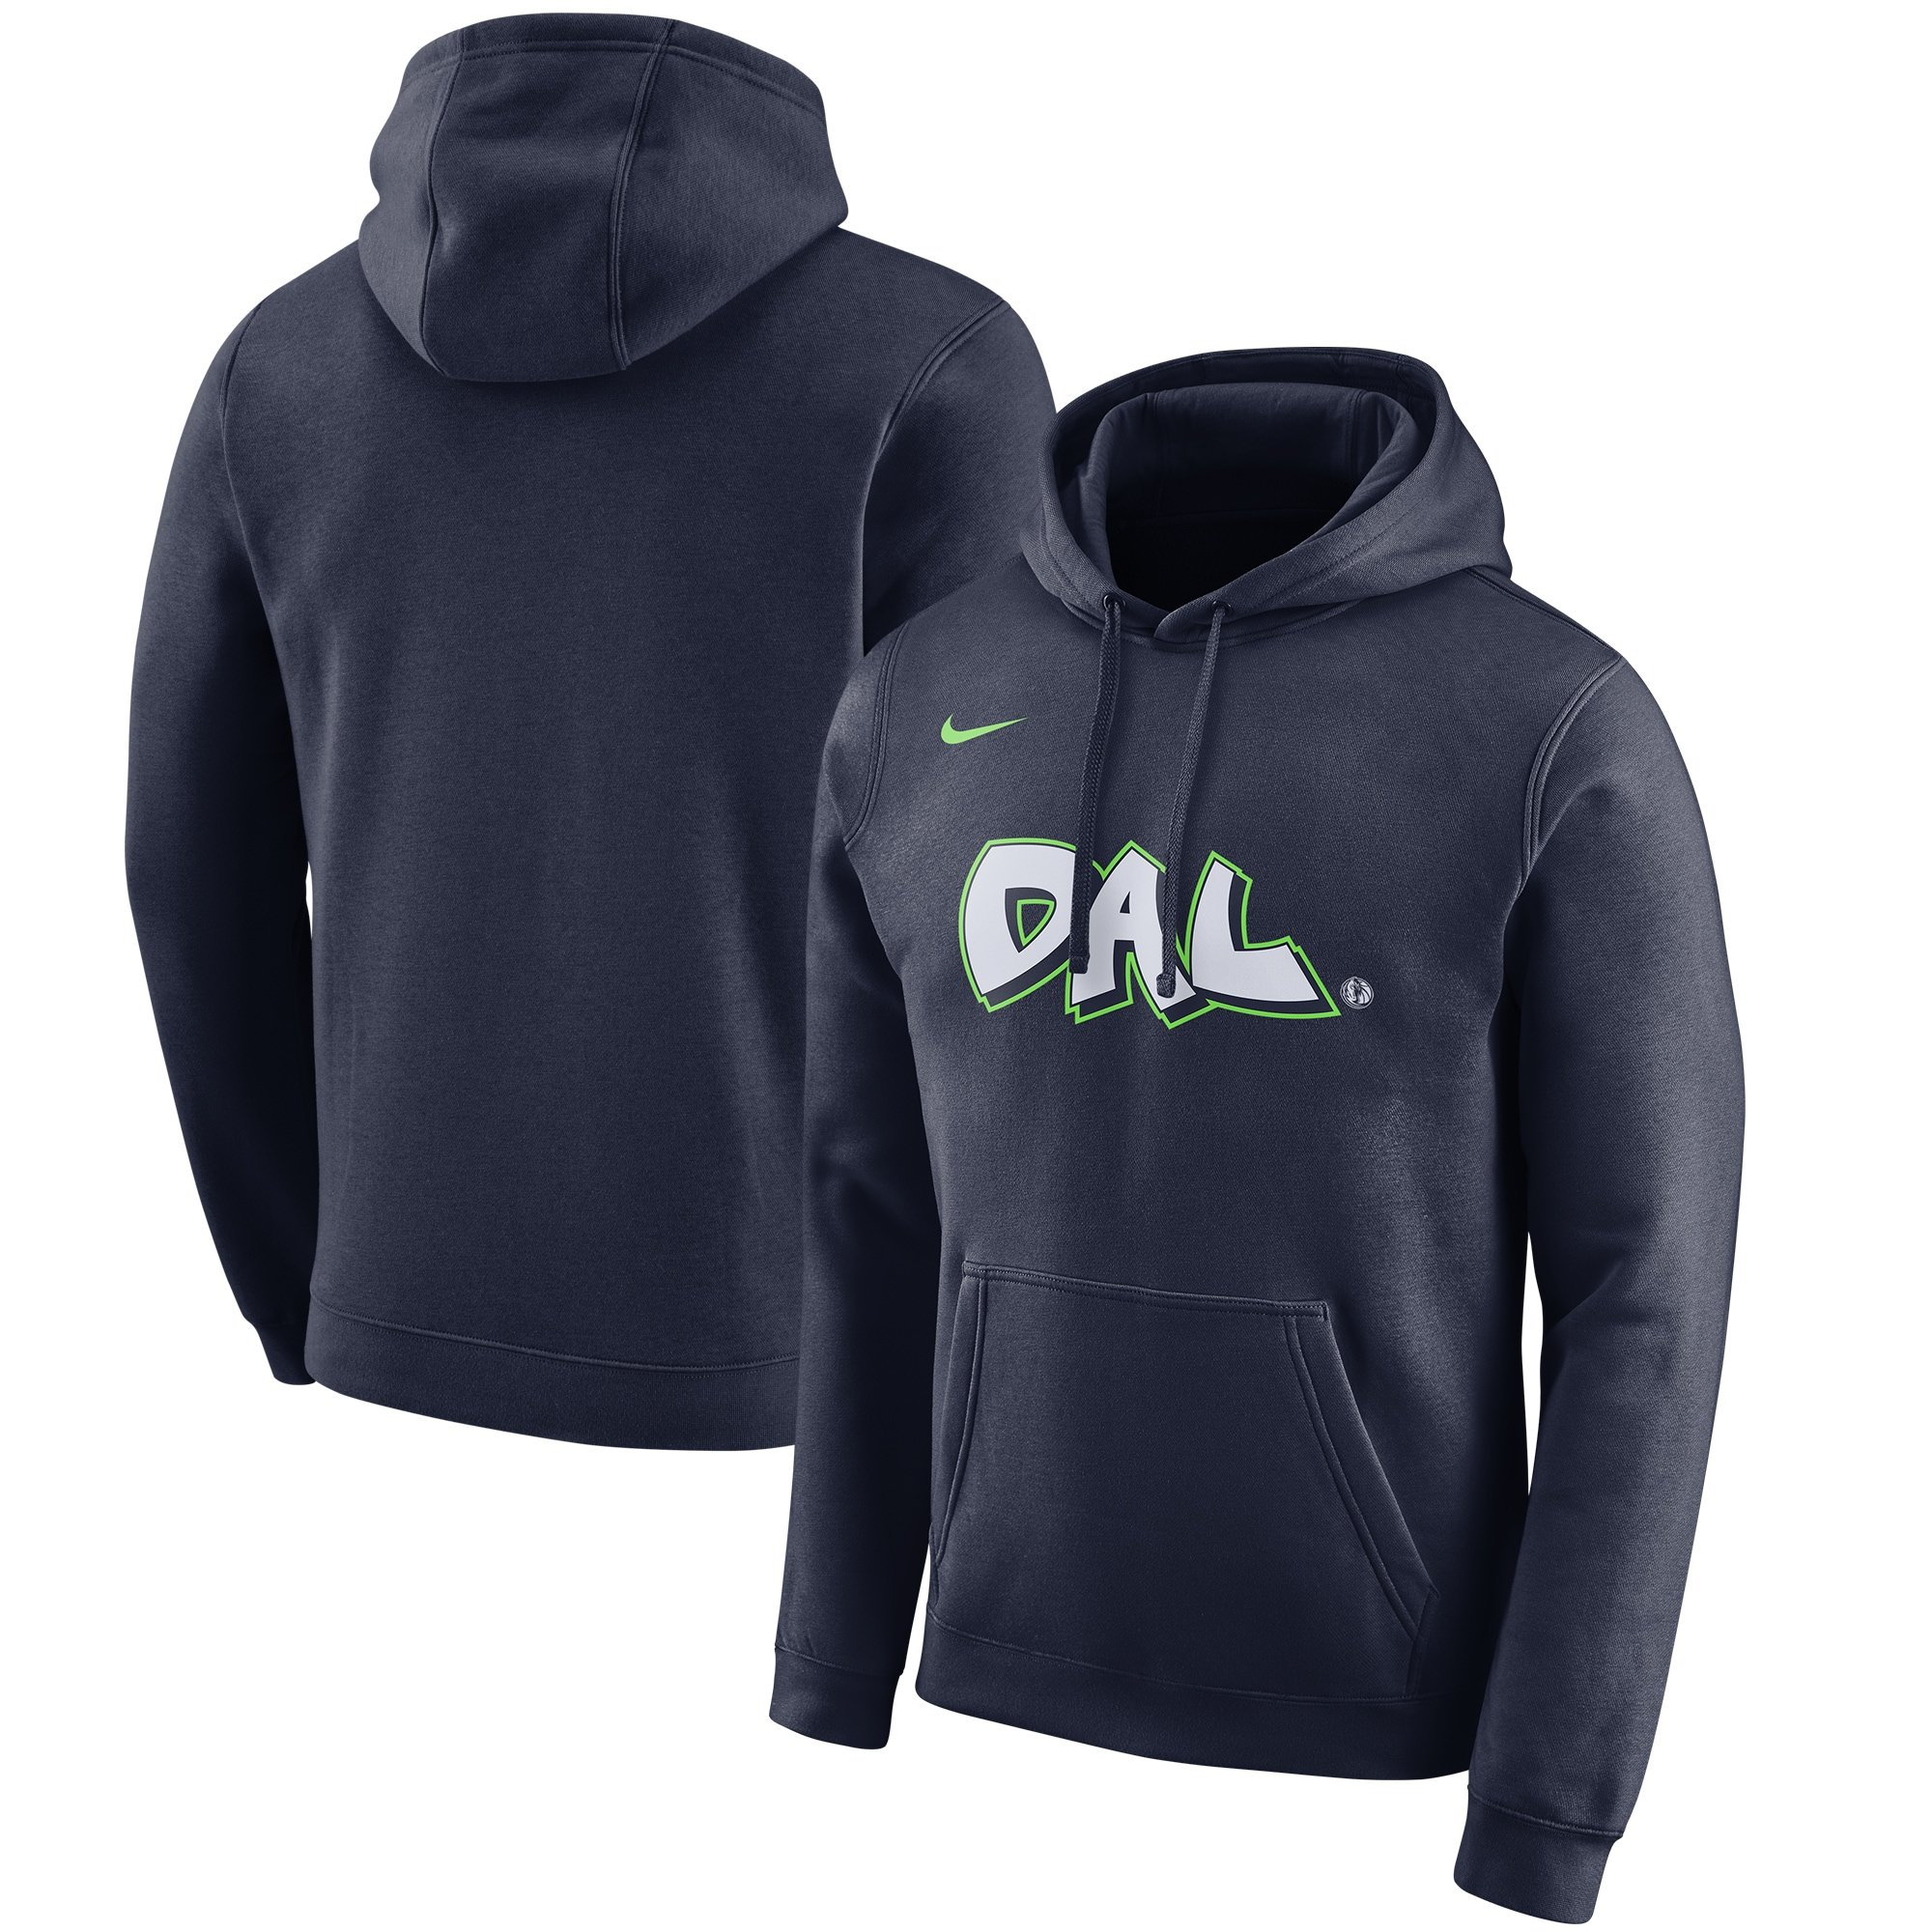 Dallas Mavericks Nike 2019/20 City Edition Club Pullover Hoodie - Navy